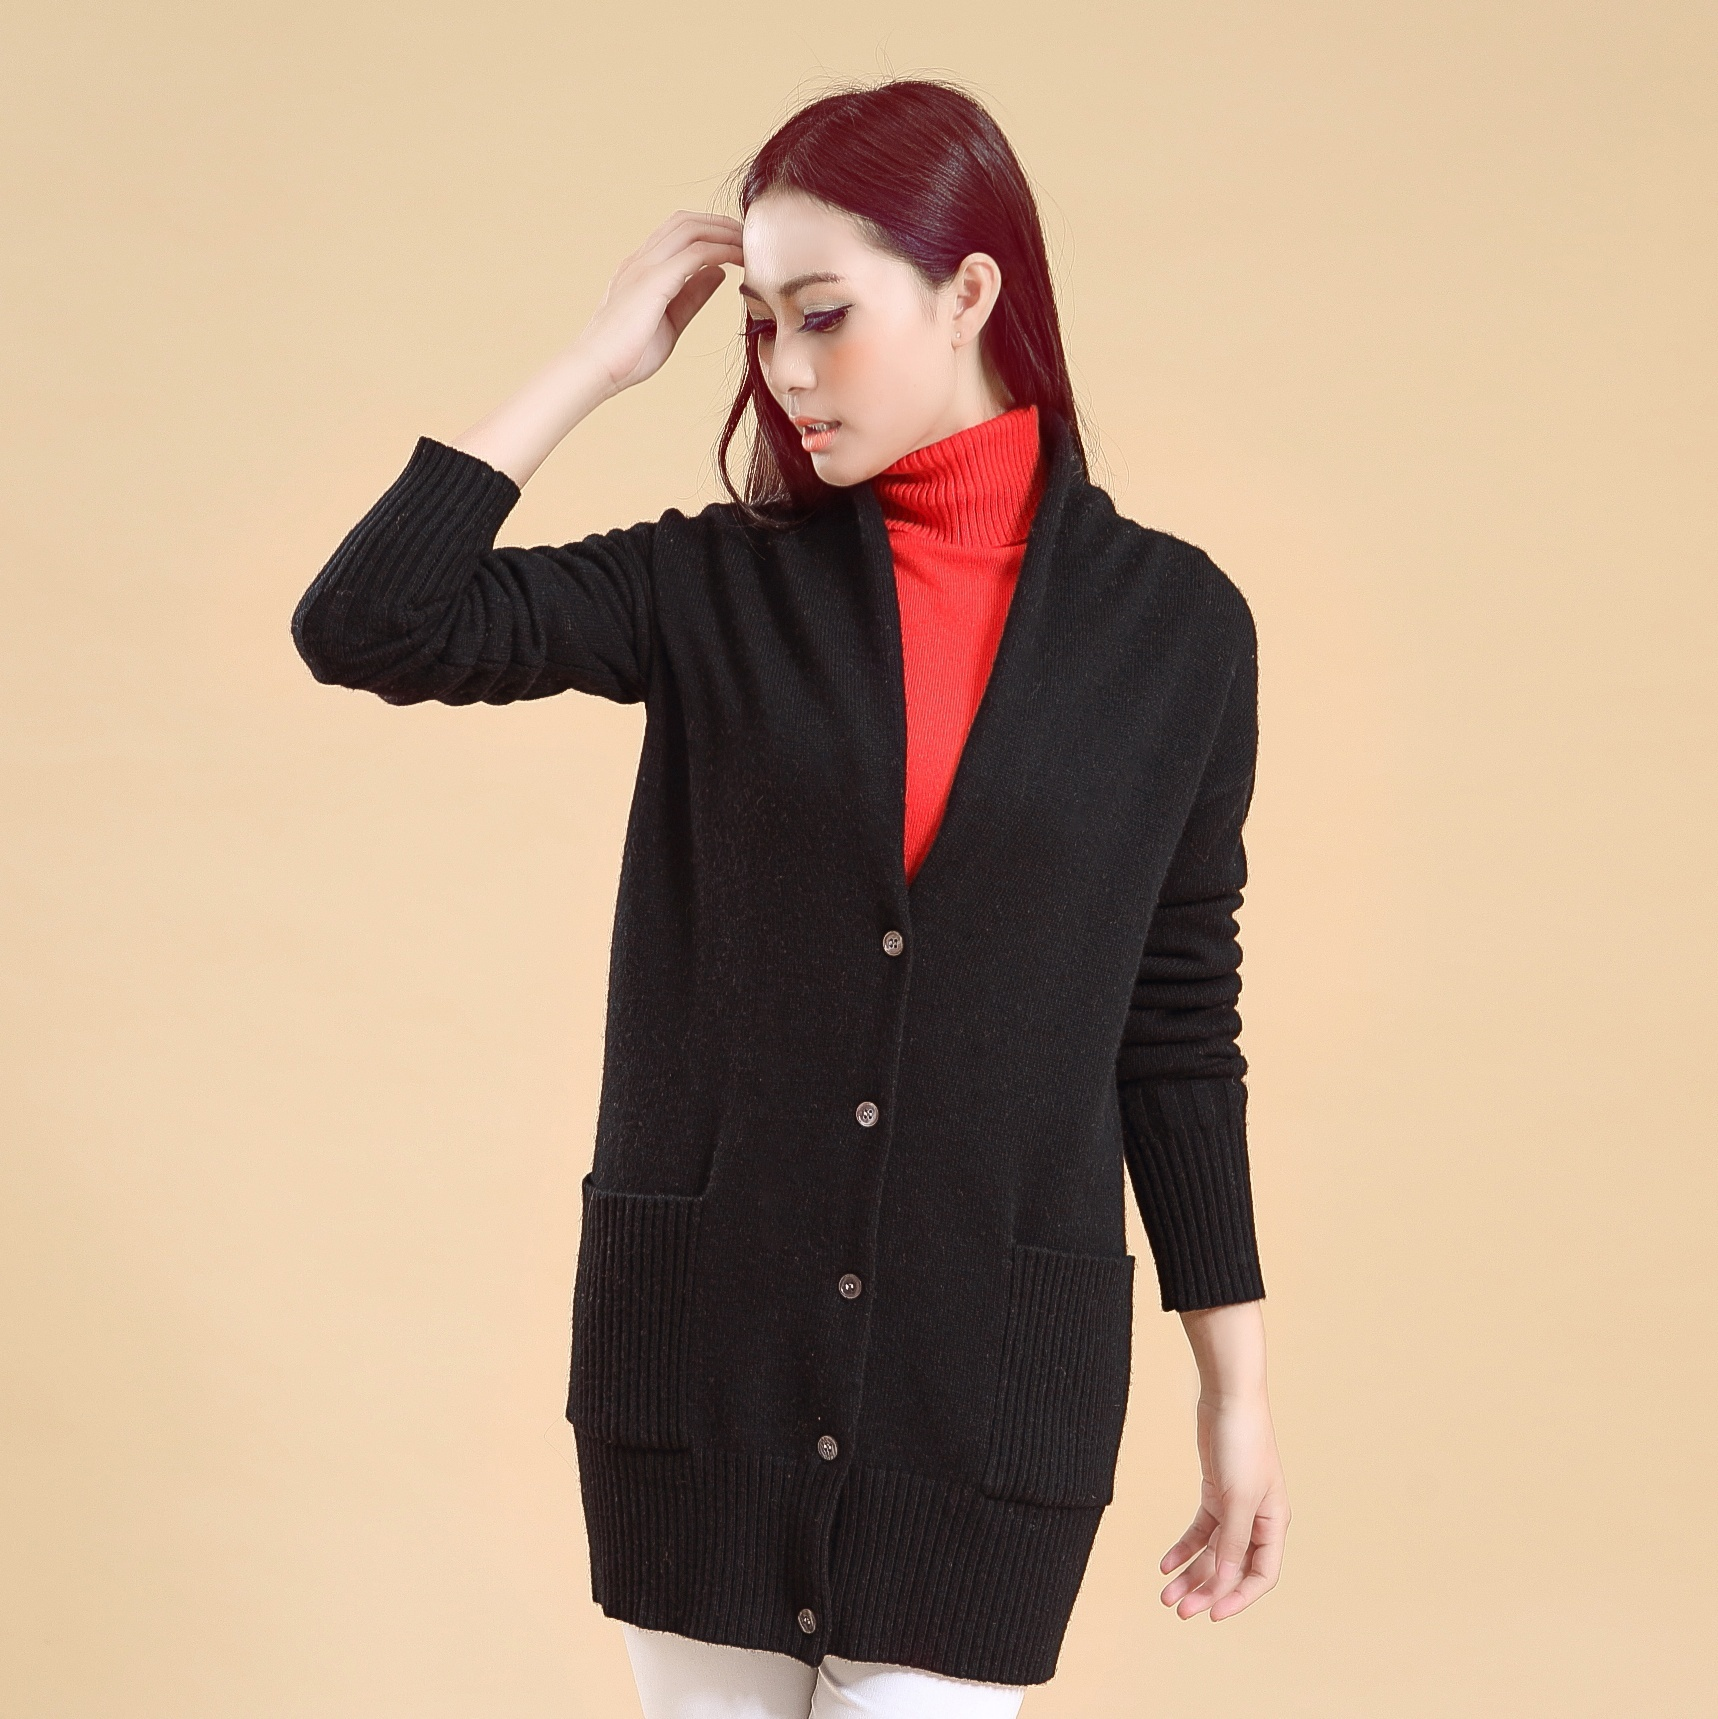 V neck long cardigan cashmere knitwear cardigan